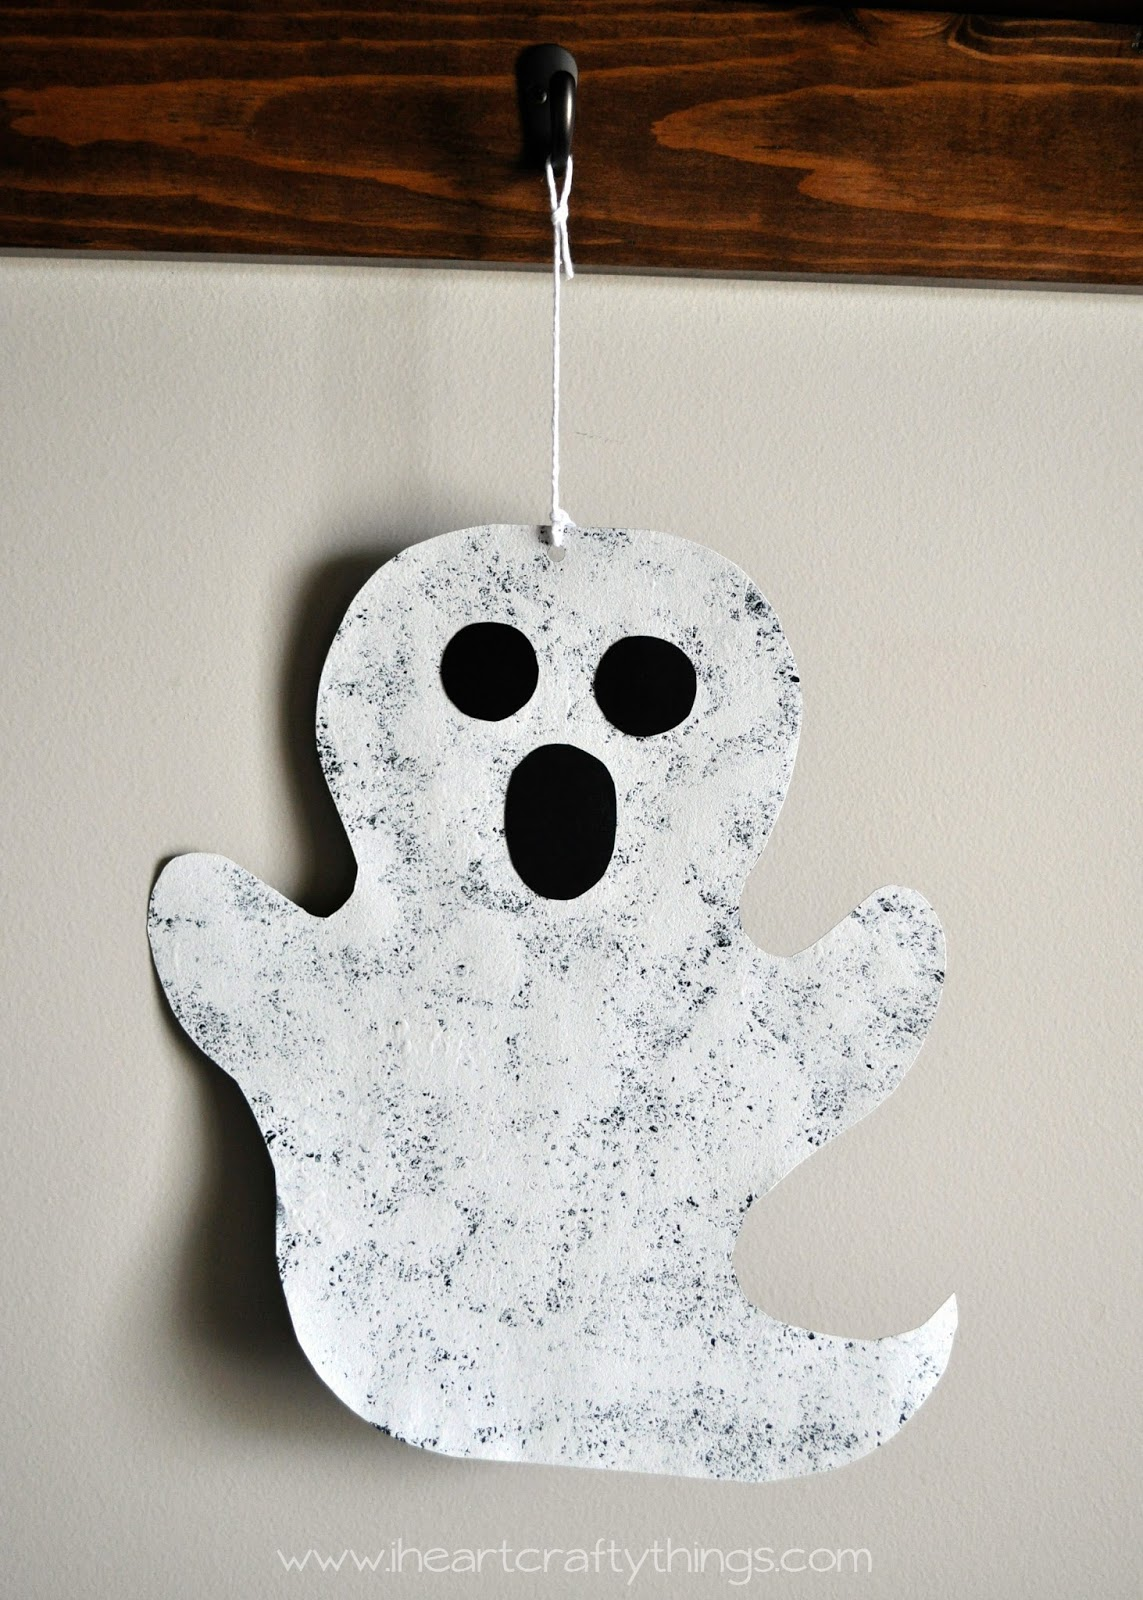 Oct 03,  · Halloween is just around the corner, so today we thought it would be fun to share some of the BEST Halloween crafts from around the web. There are so many talented bloggers out there. There are so many talented bloggers out there.